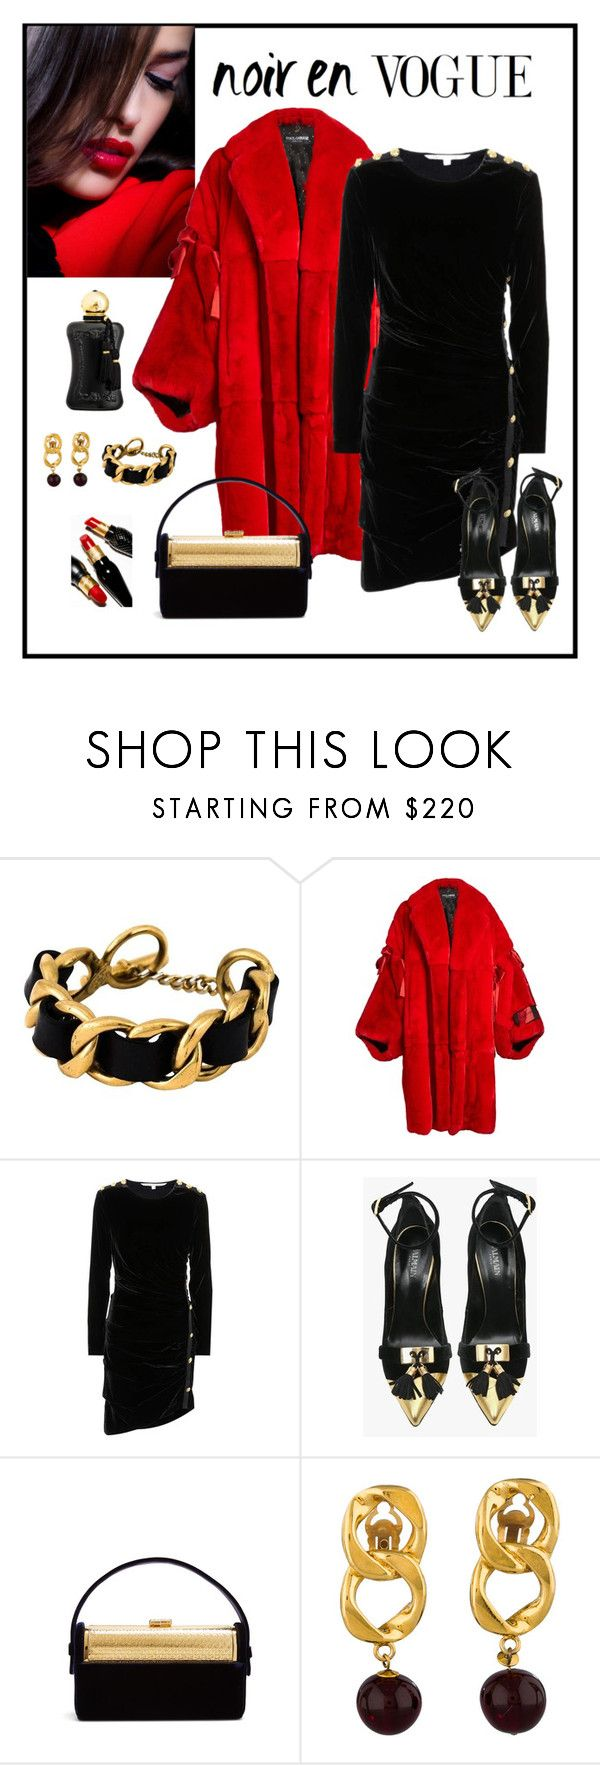 """""""Contest - Crushing on Velvet"""" by romaboots-1 ❤ liked on Polyvore featuring Chanel, Dolce&Gabbana, Veronica Beard, Balmain, Bienen-Davis and Parfums de Marly"""